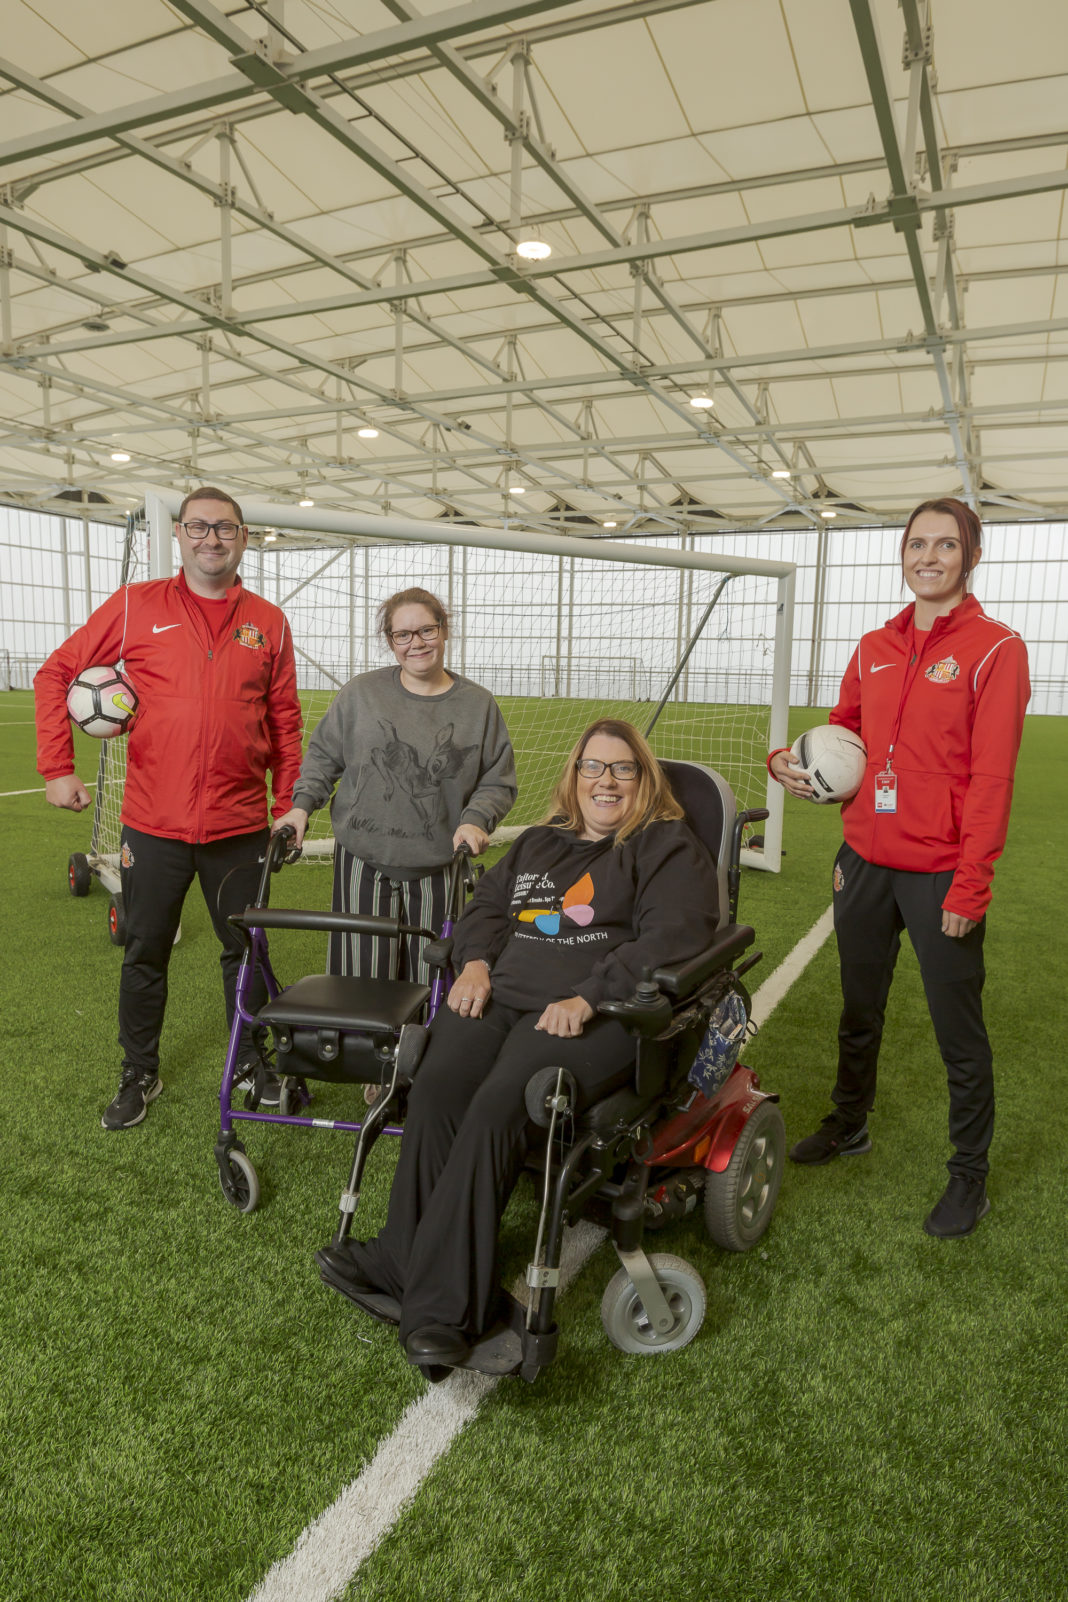 New Partnership Between The Foundation Of Light And Tailored Leisure Company Kicks Off